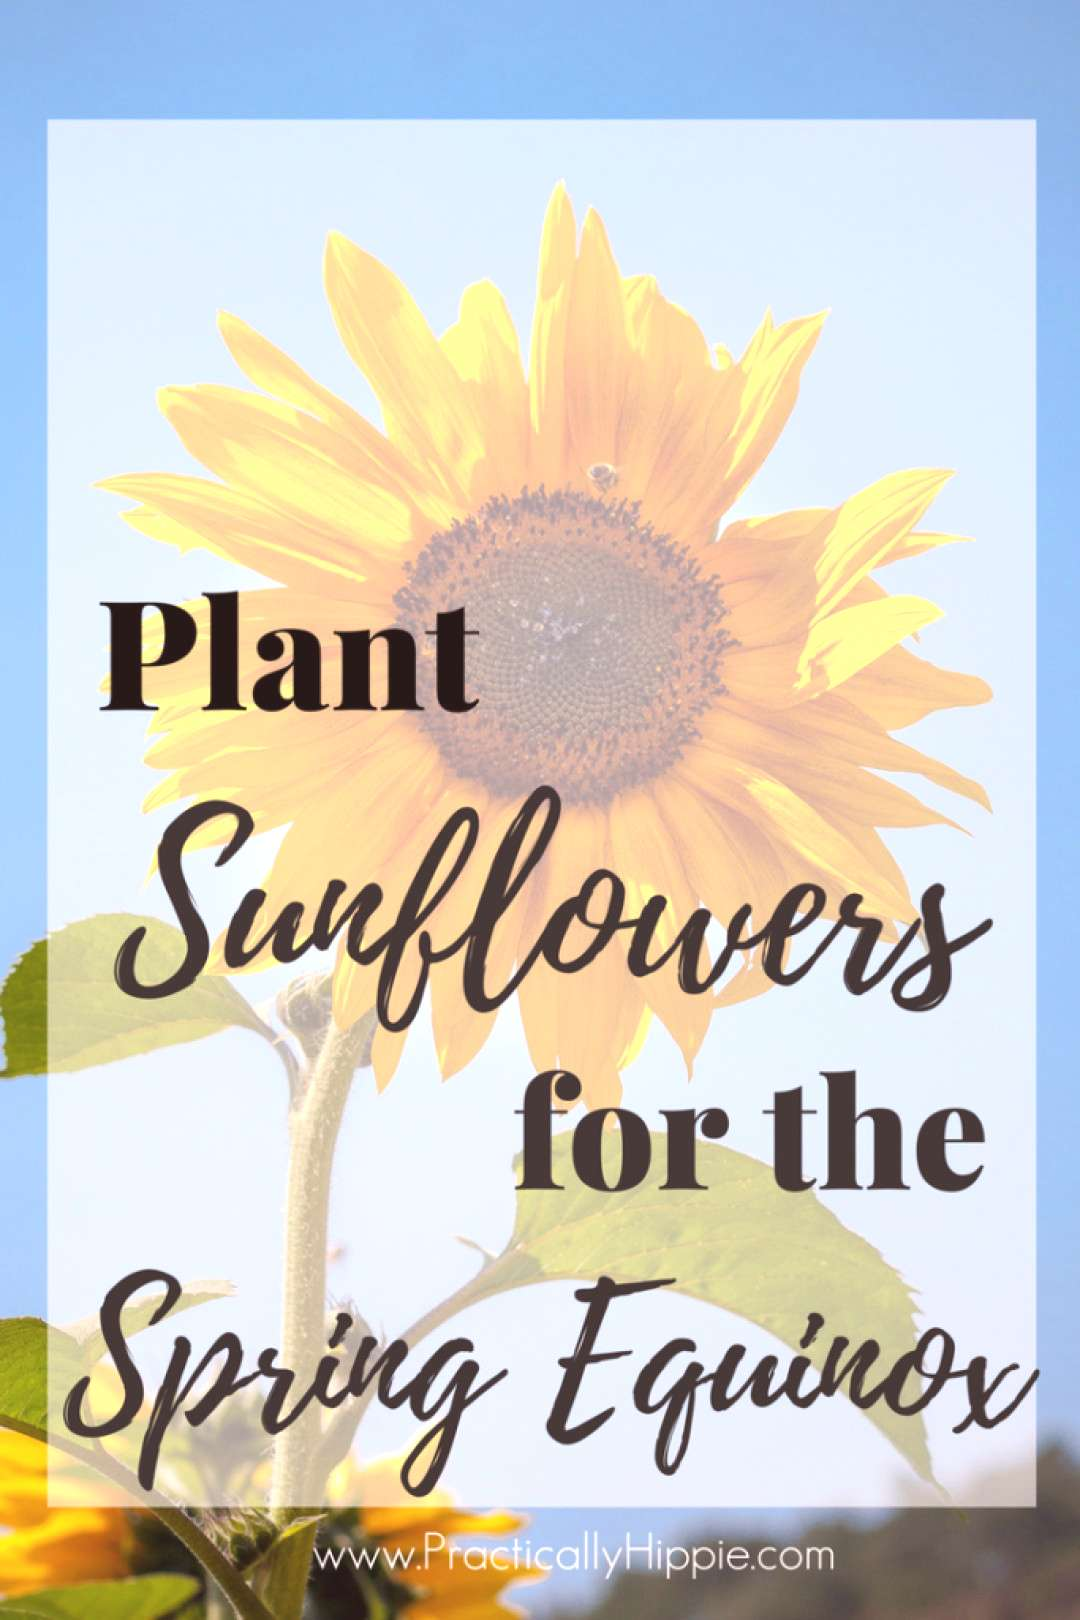 Planting Sunflowers for Spring Equinox - Rooted Childhood#childhood